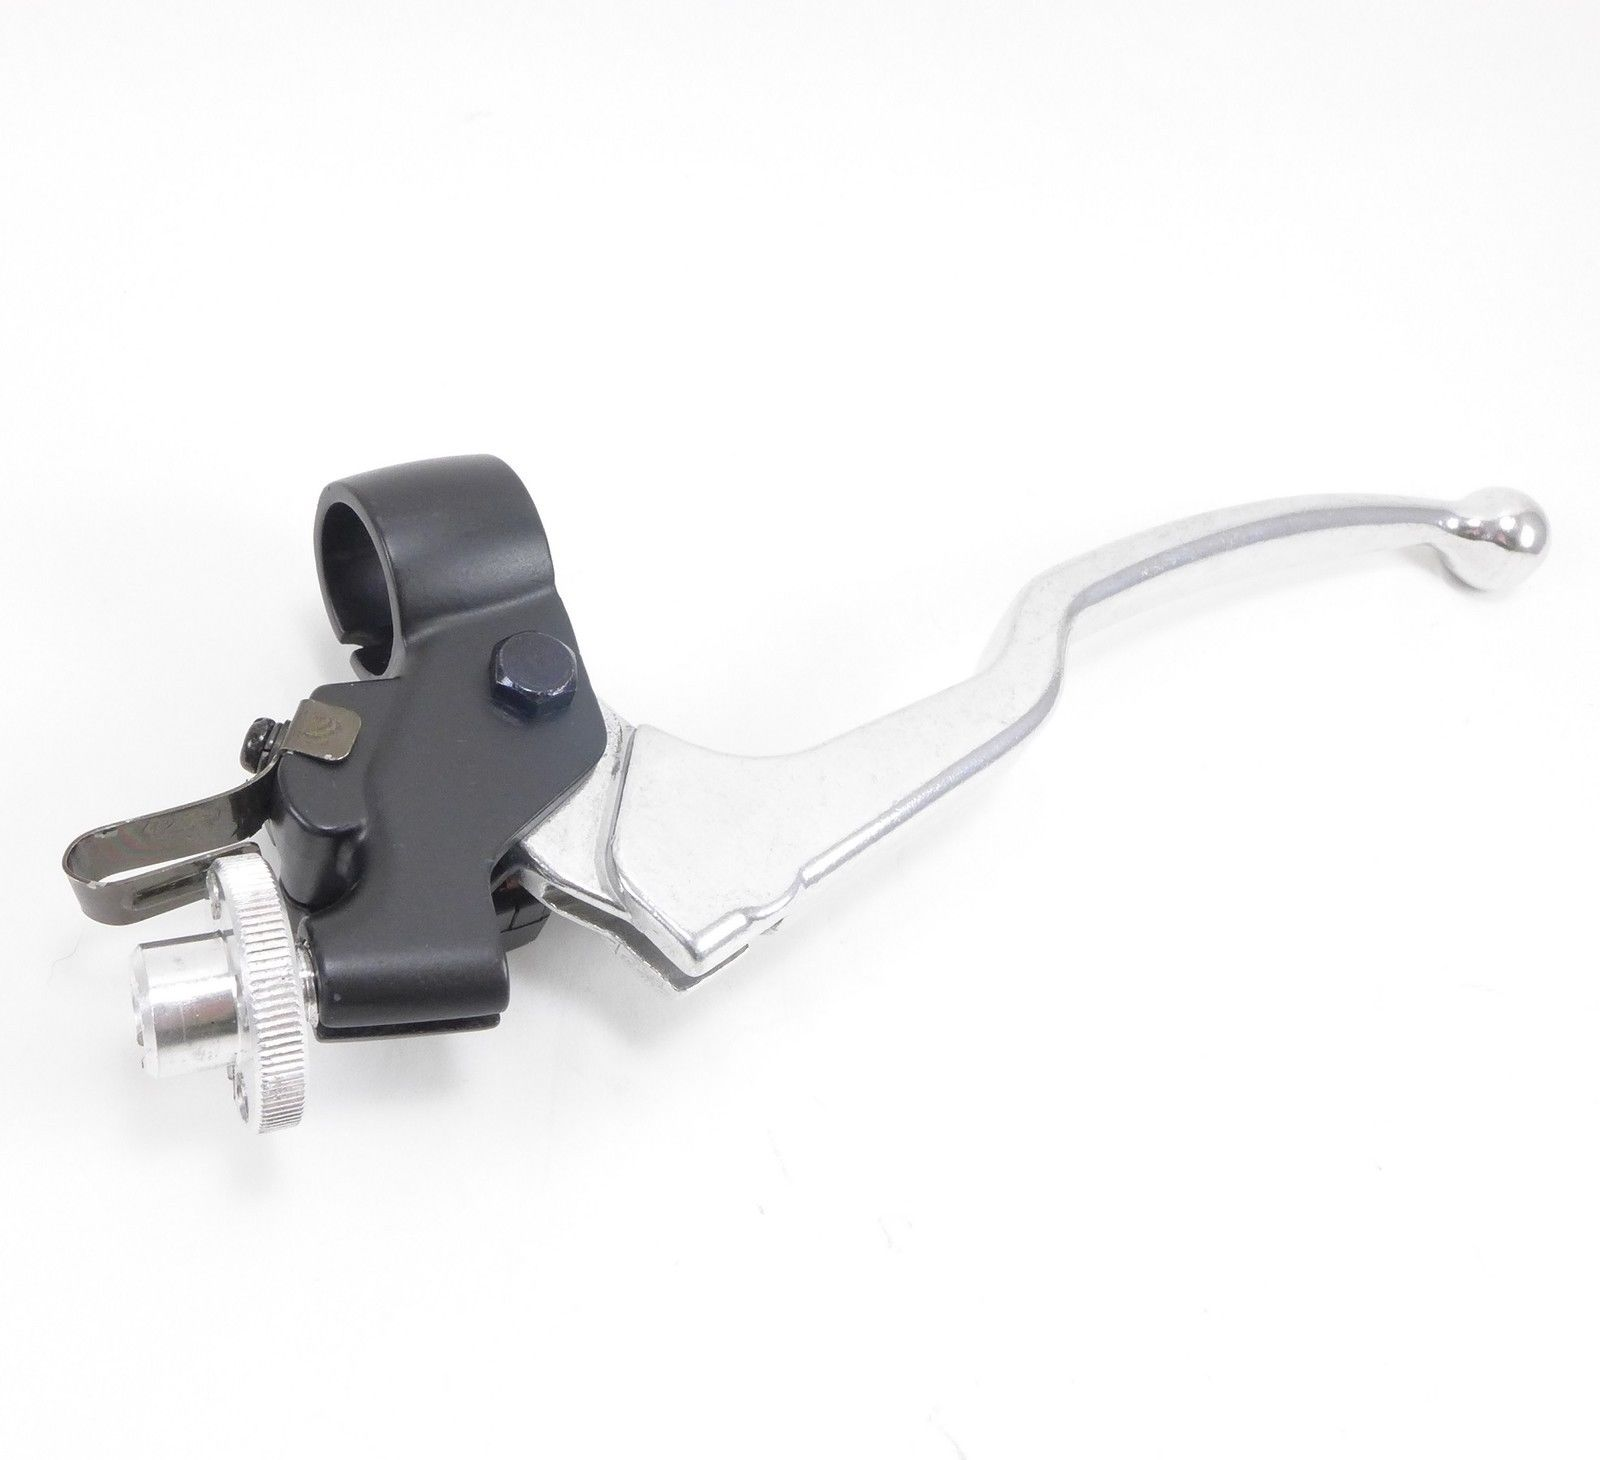 Cable Lever Arm : Suzuki clutch lever w perch cable adjuster motorcycle